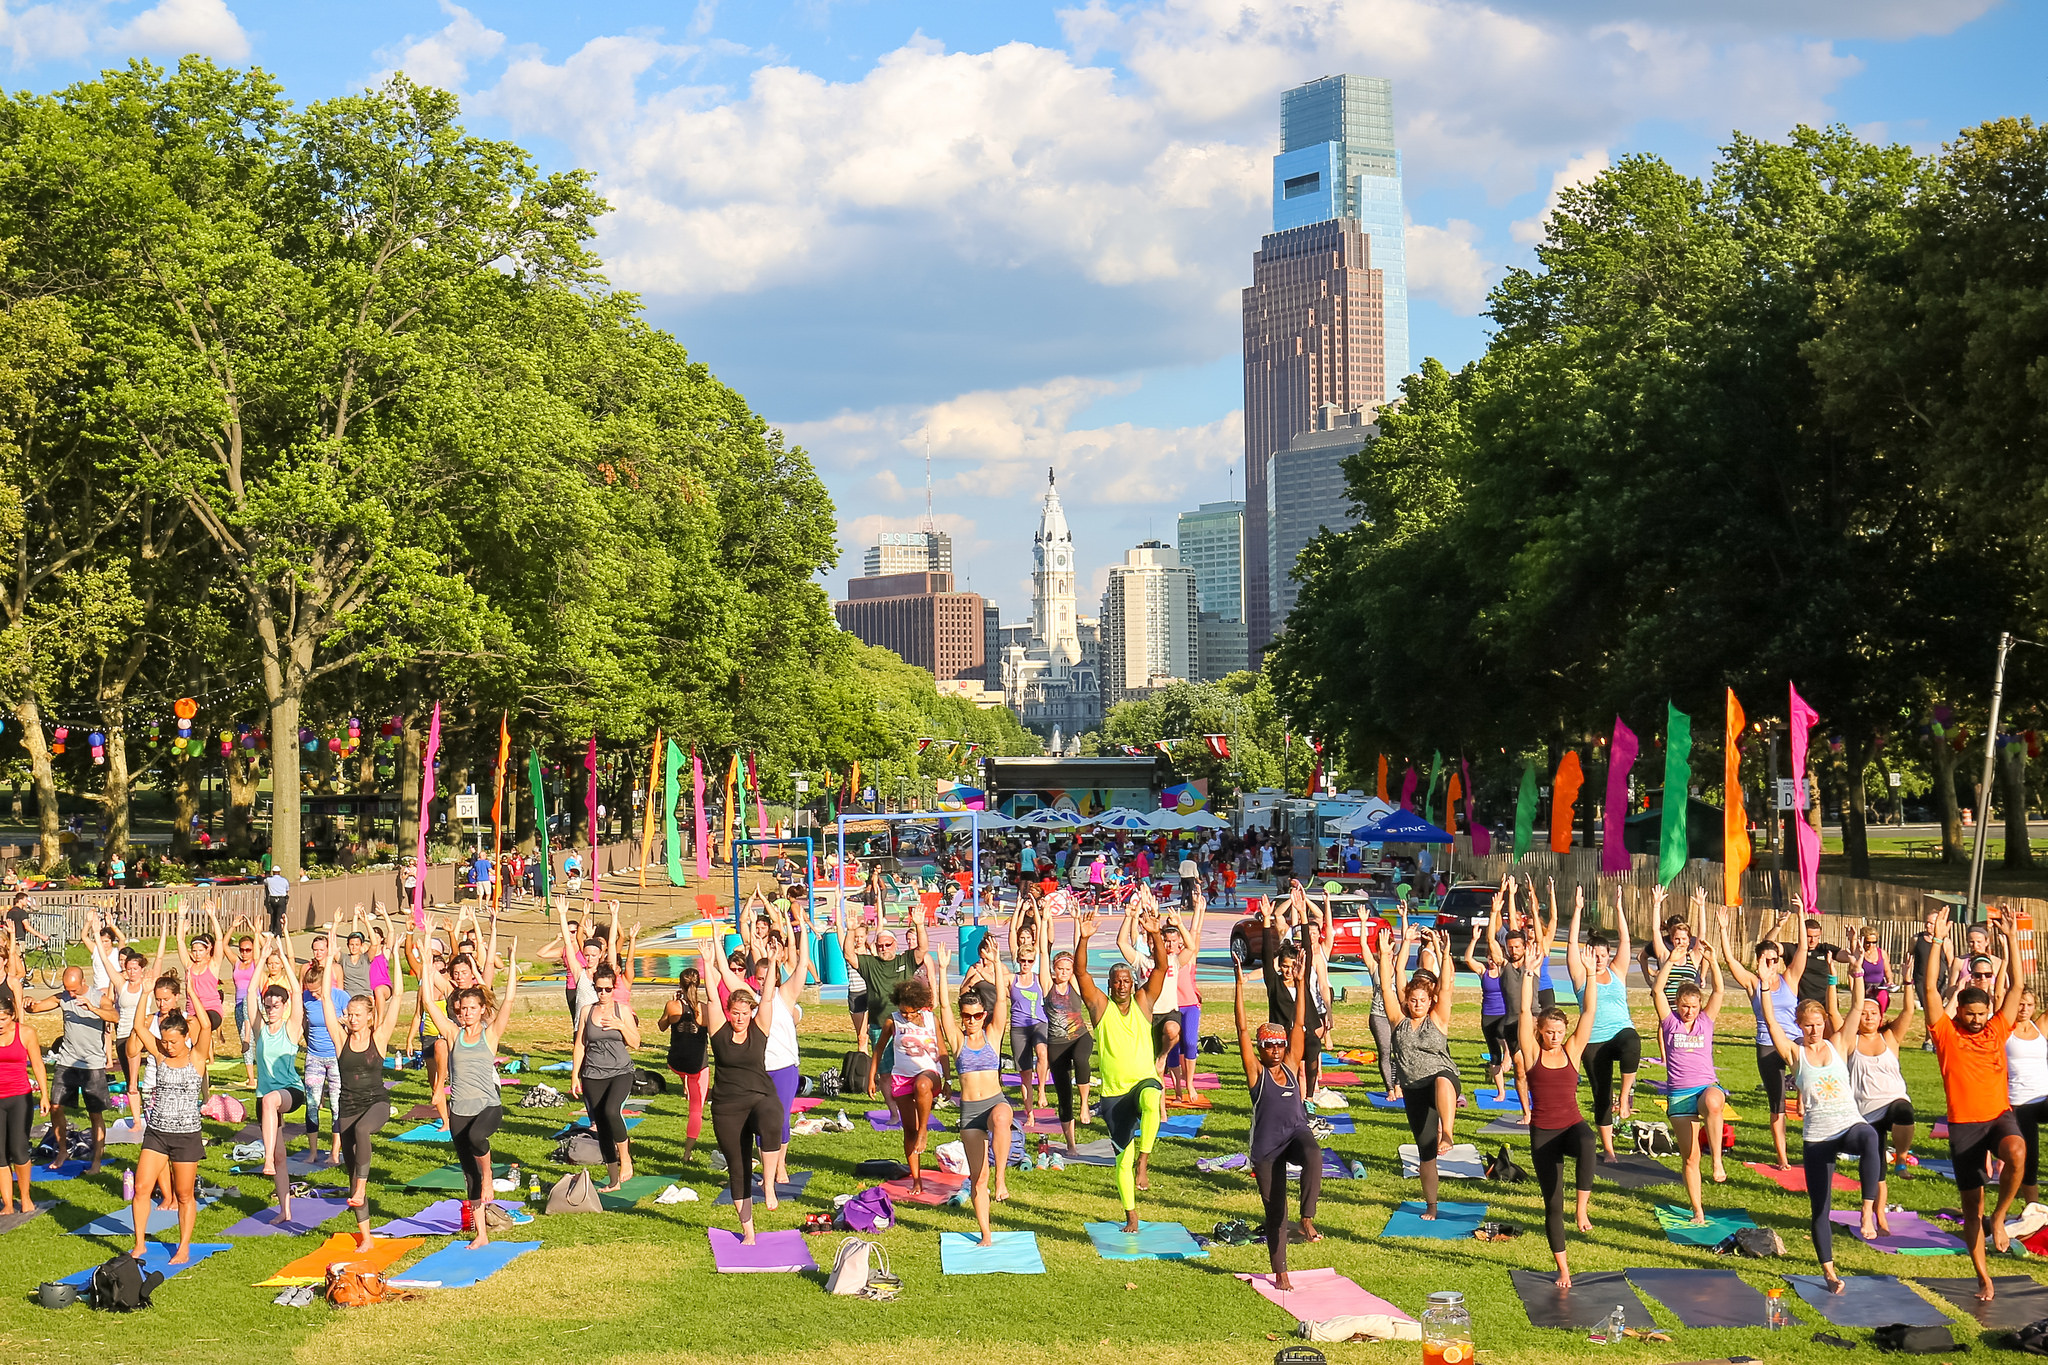 Yoga classes at The Oval